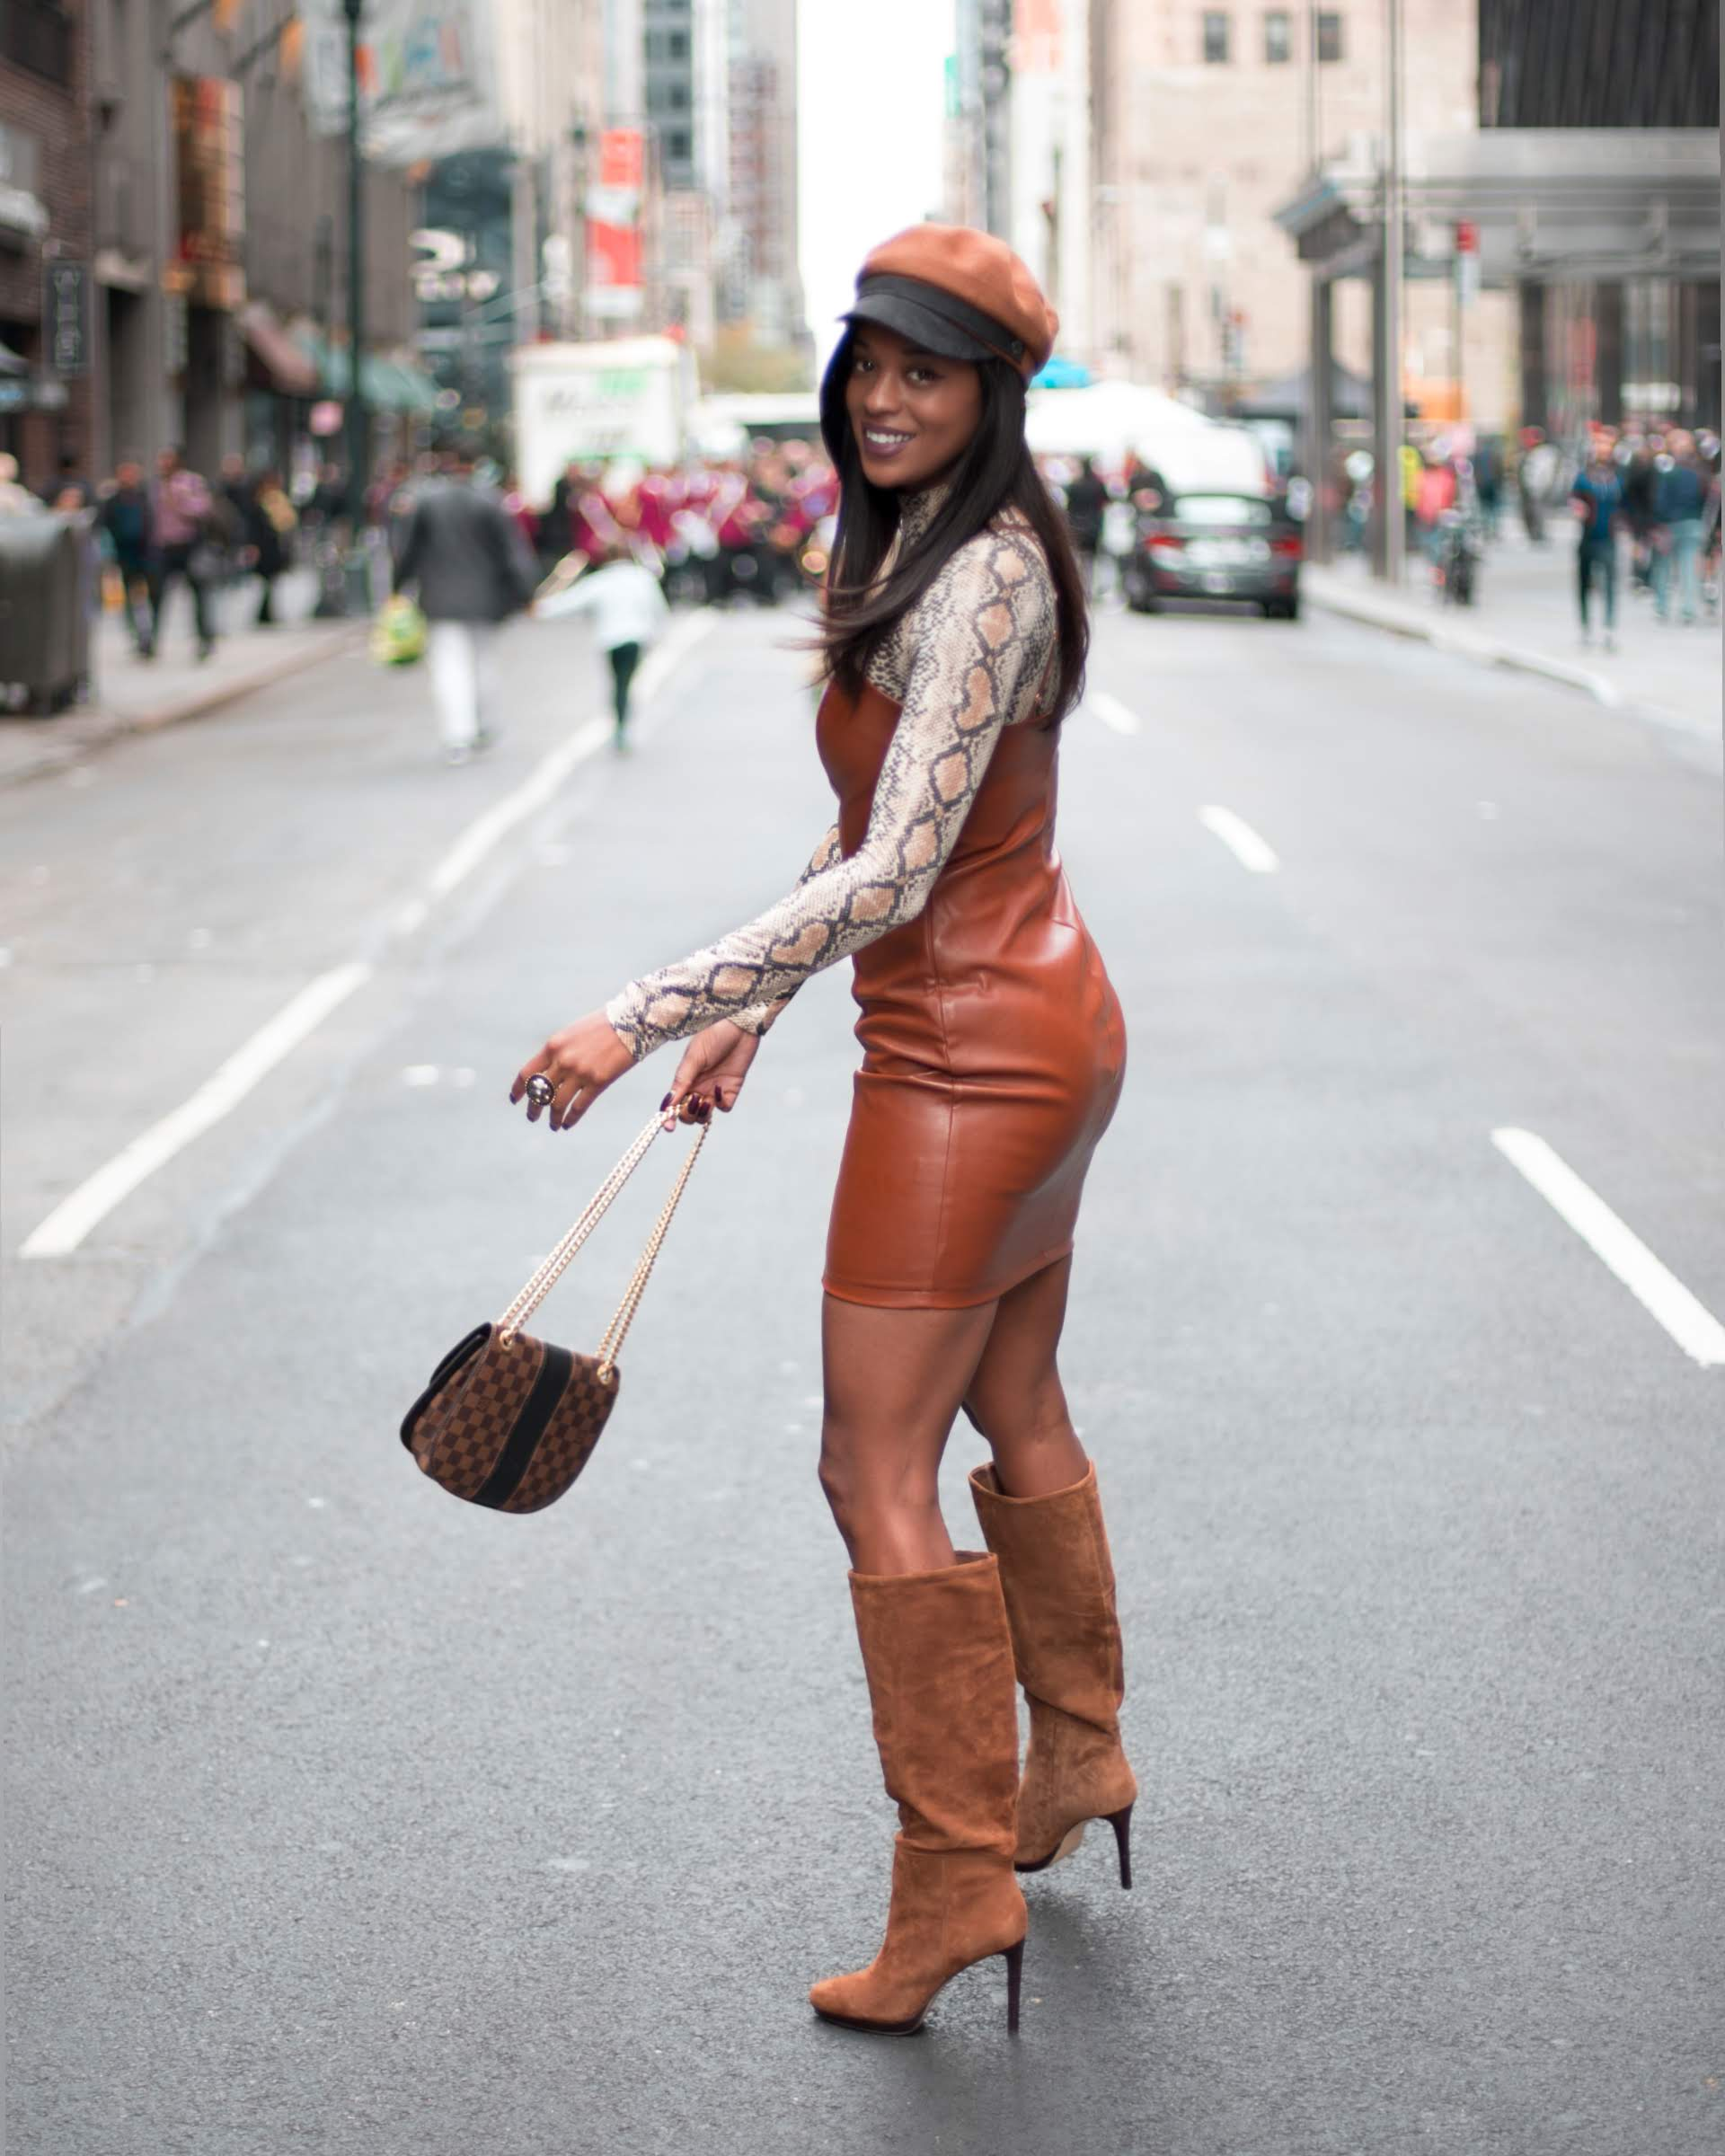 Girl standing in street holding a purse wearing brown knee high boots, brown leather dress and a snake print top